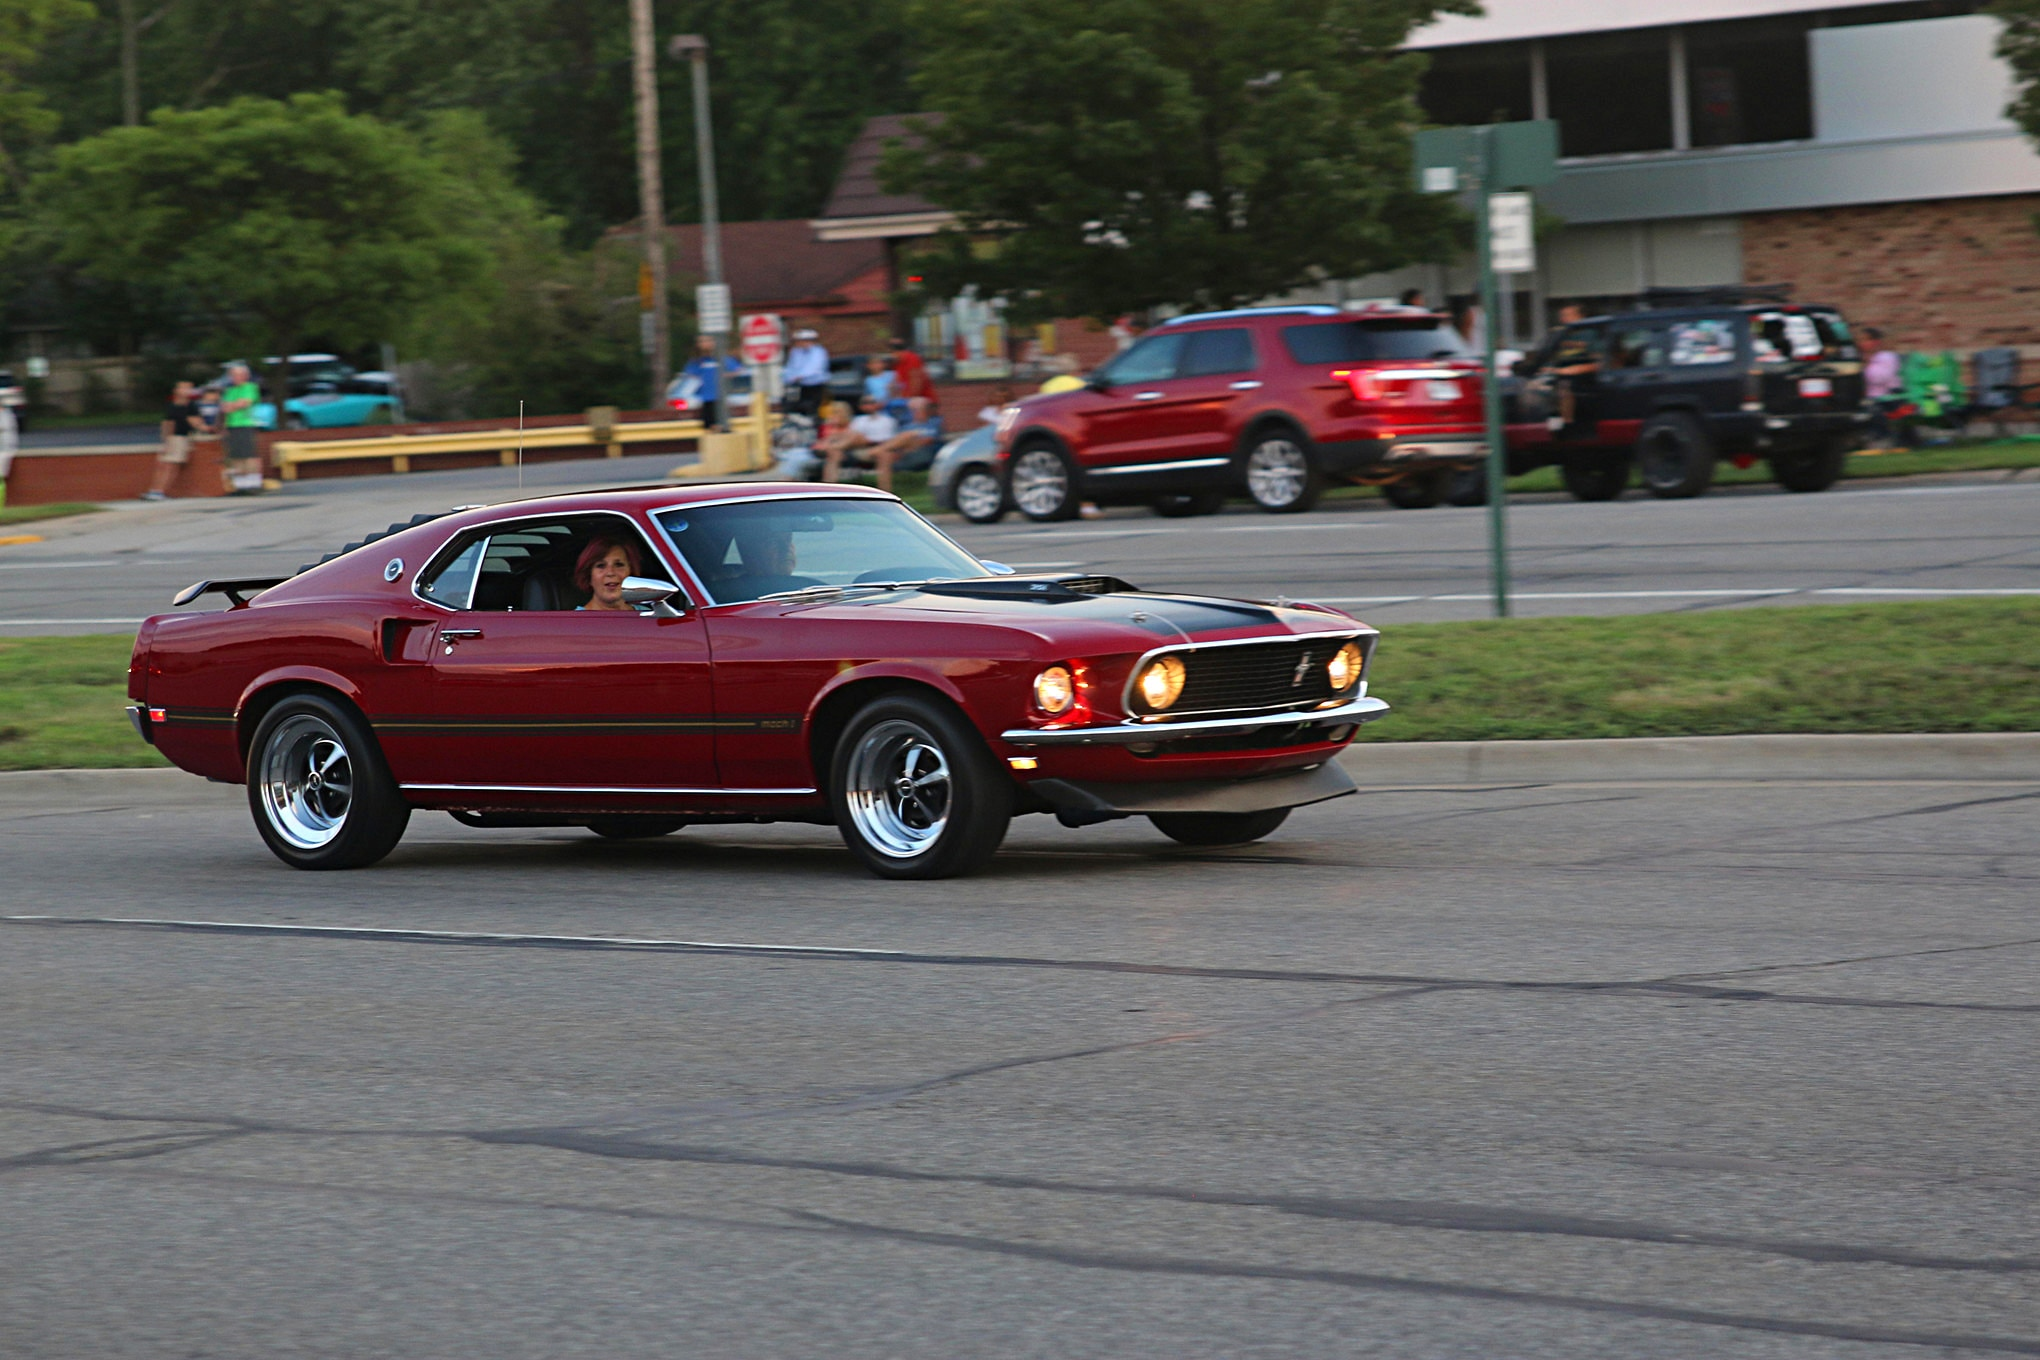 2016 Woodward Dream Cruise Mustangs 067